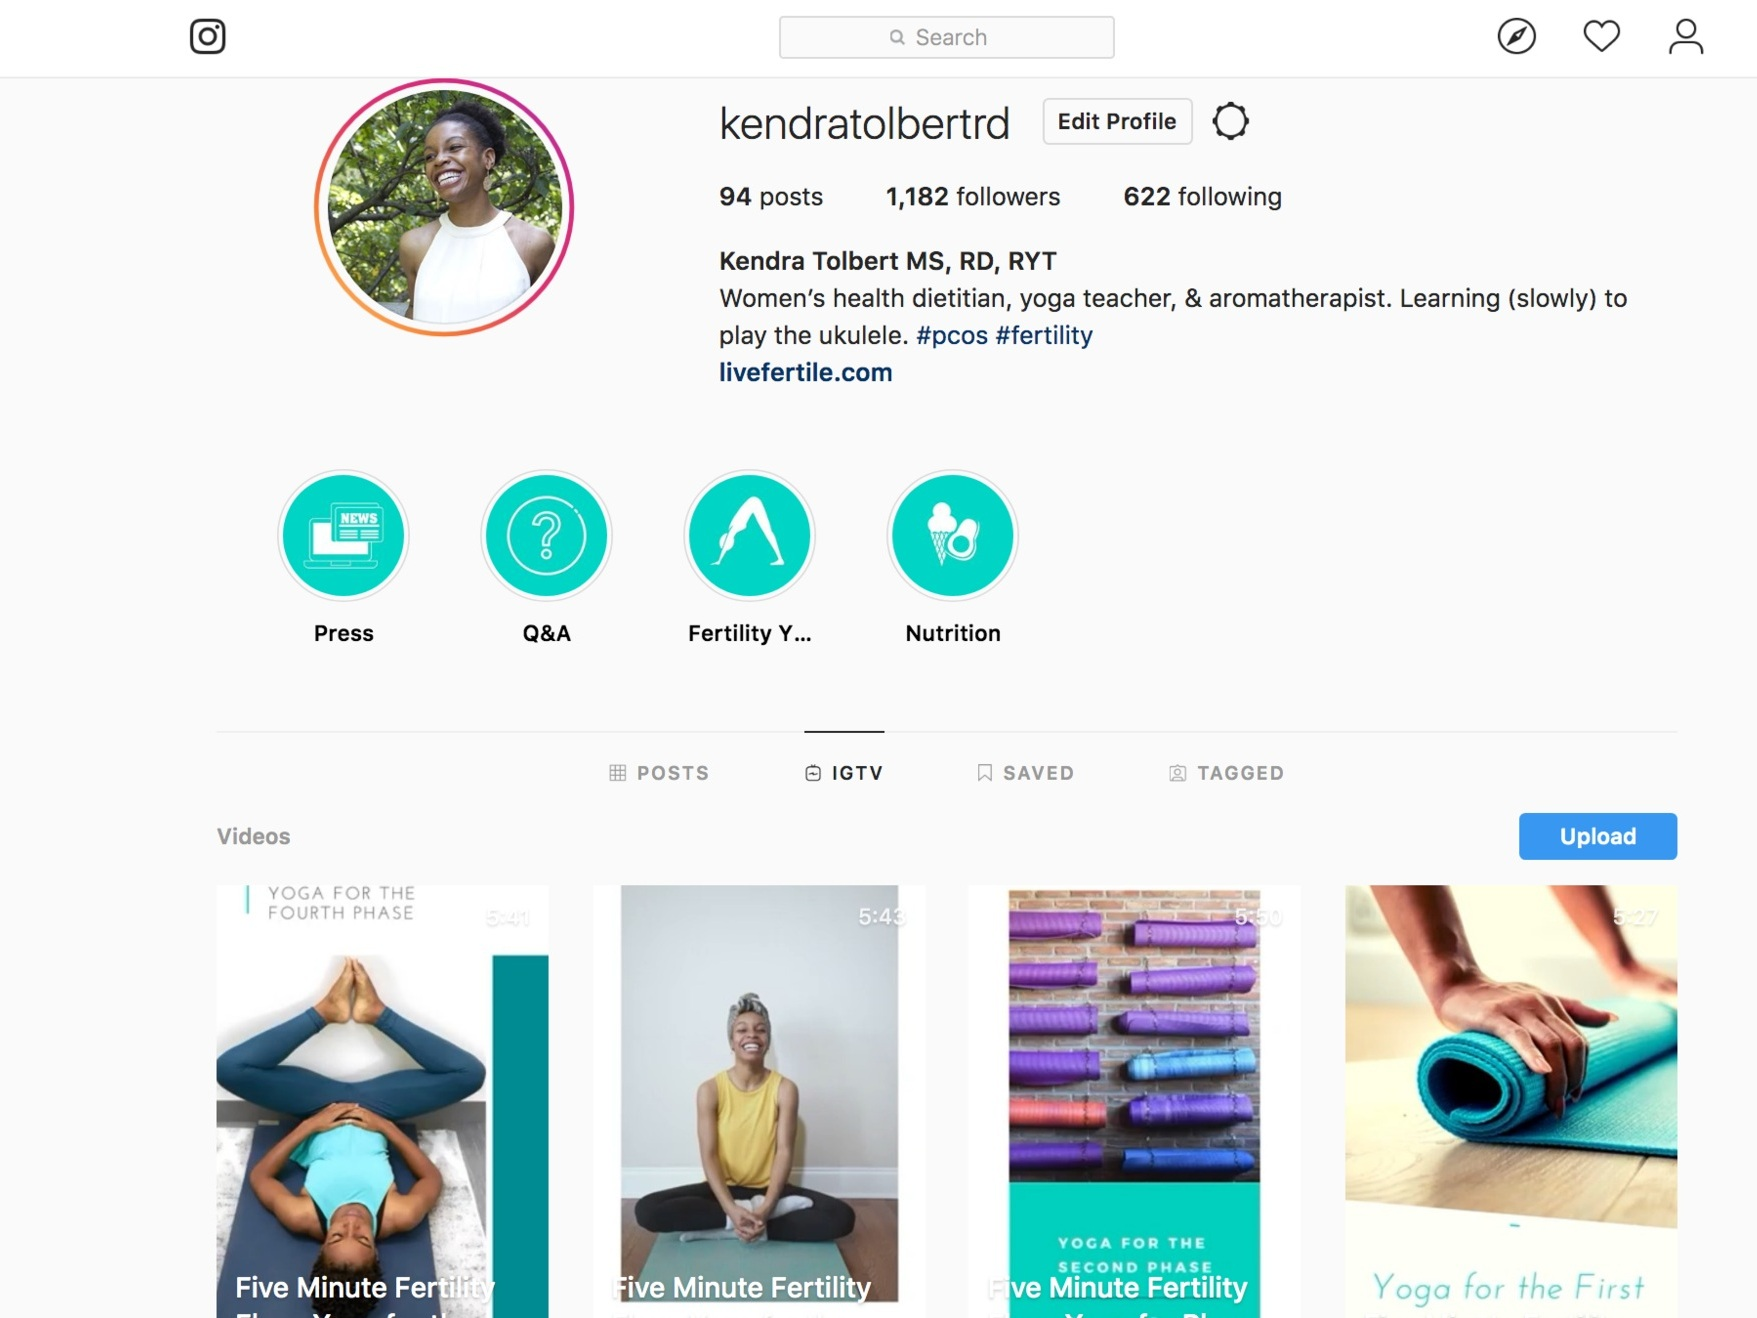 PCOS and Fertility Yoga Instagram Video Live Fertile